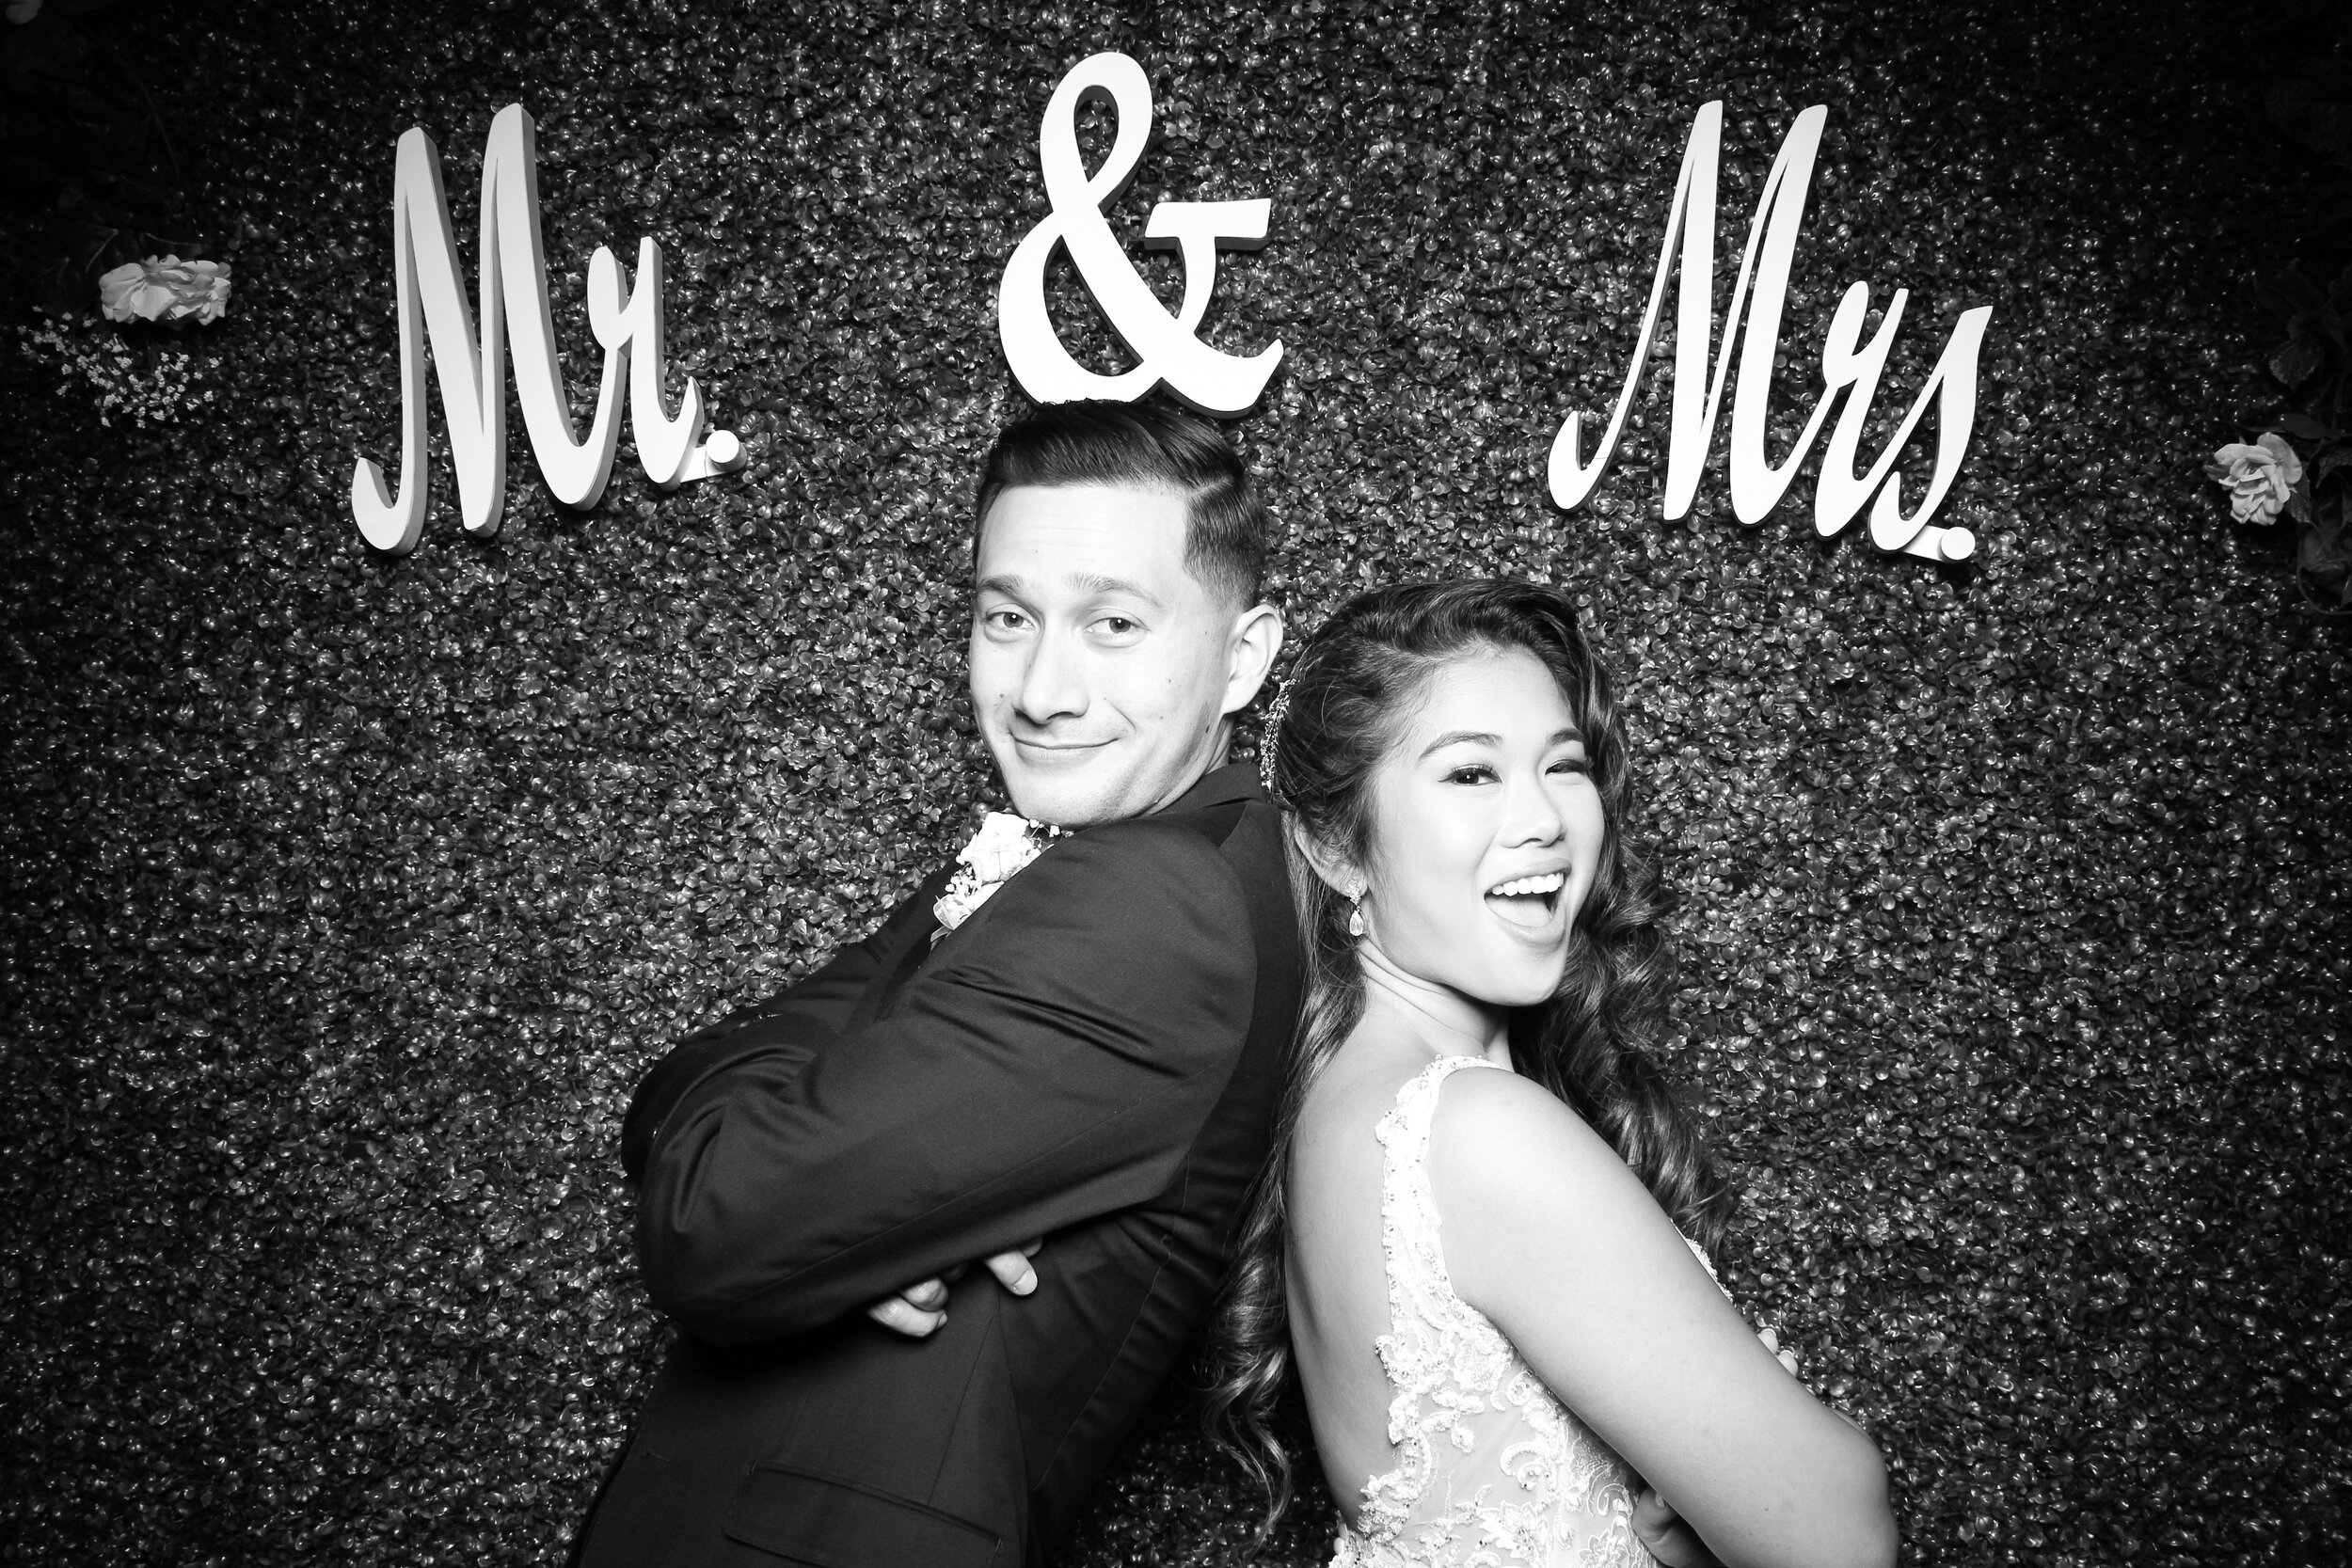 Green_Hedge_Ivy_Wall_Backdrop_Photo_Booth_Rental_Chicago_07.jpg